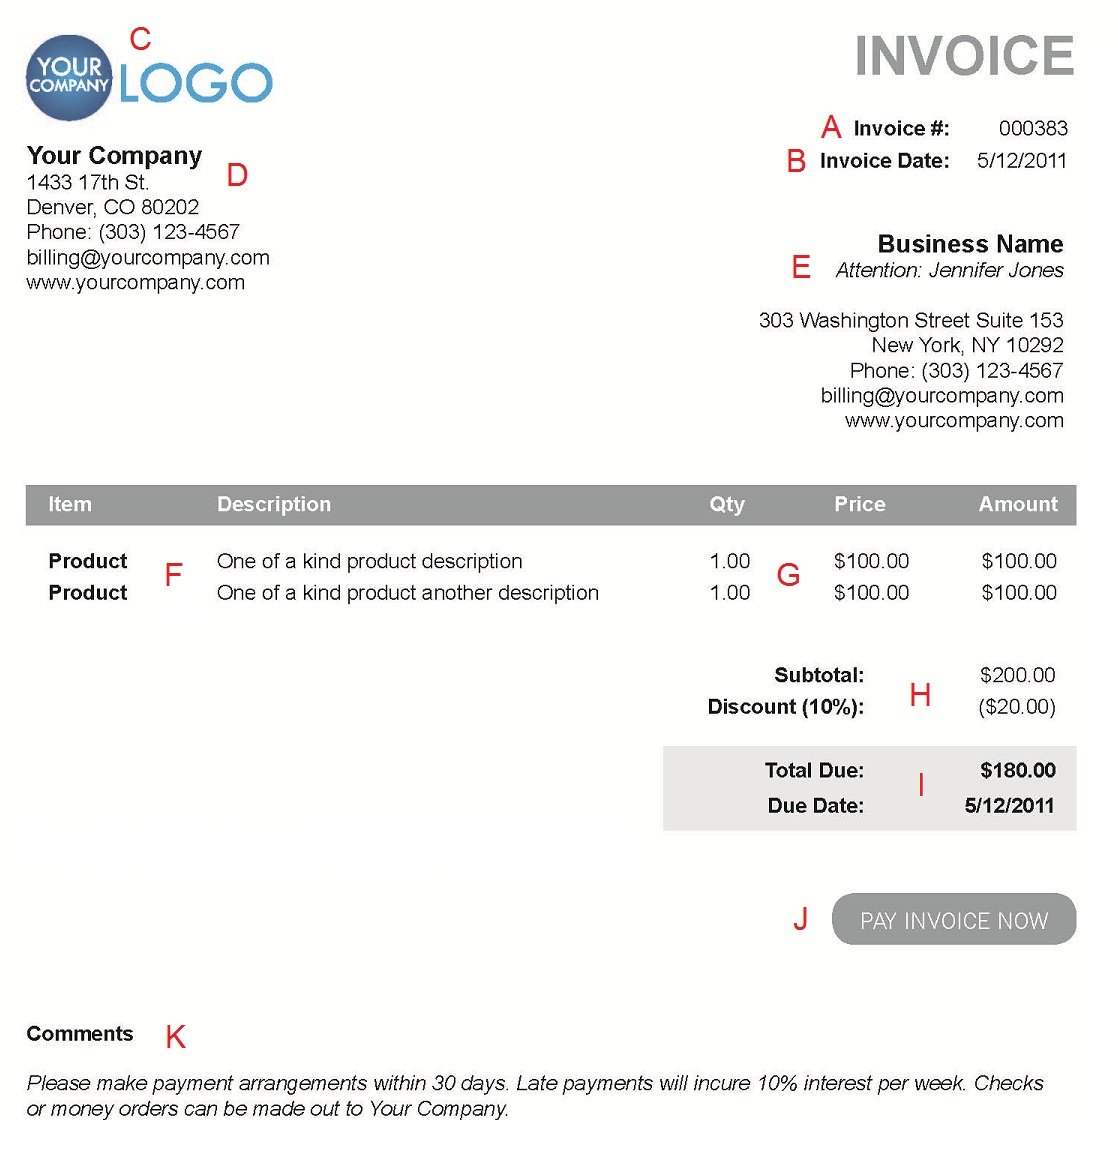 Aaaaeroincus  Picturesque The  Different Sections Of An Electronic Payment Invoice With Goodlooking A  With Delectable Example Of An Invoice For Payment Also Download Invoice Template Pdf In Addition Best Invoice Designs And Labour Invoice Template As Well As Invoice Template Free Uk Additionally Rbs Invoice Discounting From Paysimplecom With Aaaaeroincus  Goodlooking The  Different Sections Of An Electronic Payment Invoice With Delectable A  And Picturesque Example Of An Invoice For Payment Also Download Invoice Template Pdf In Addition Best Invoice Designs From Paysimplecom